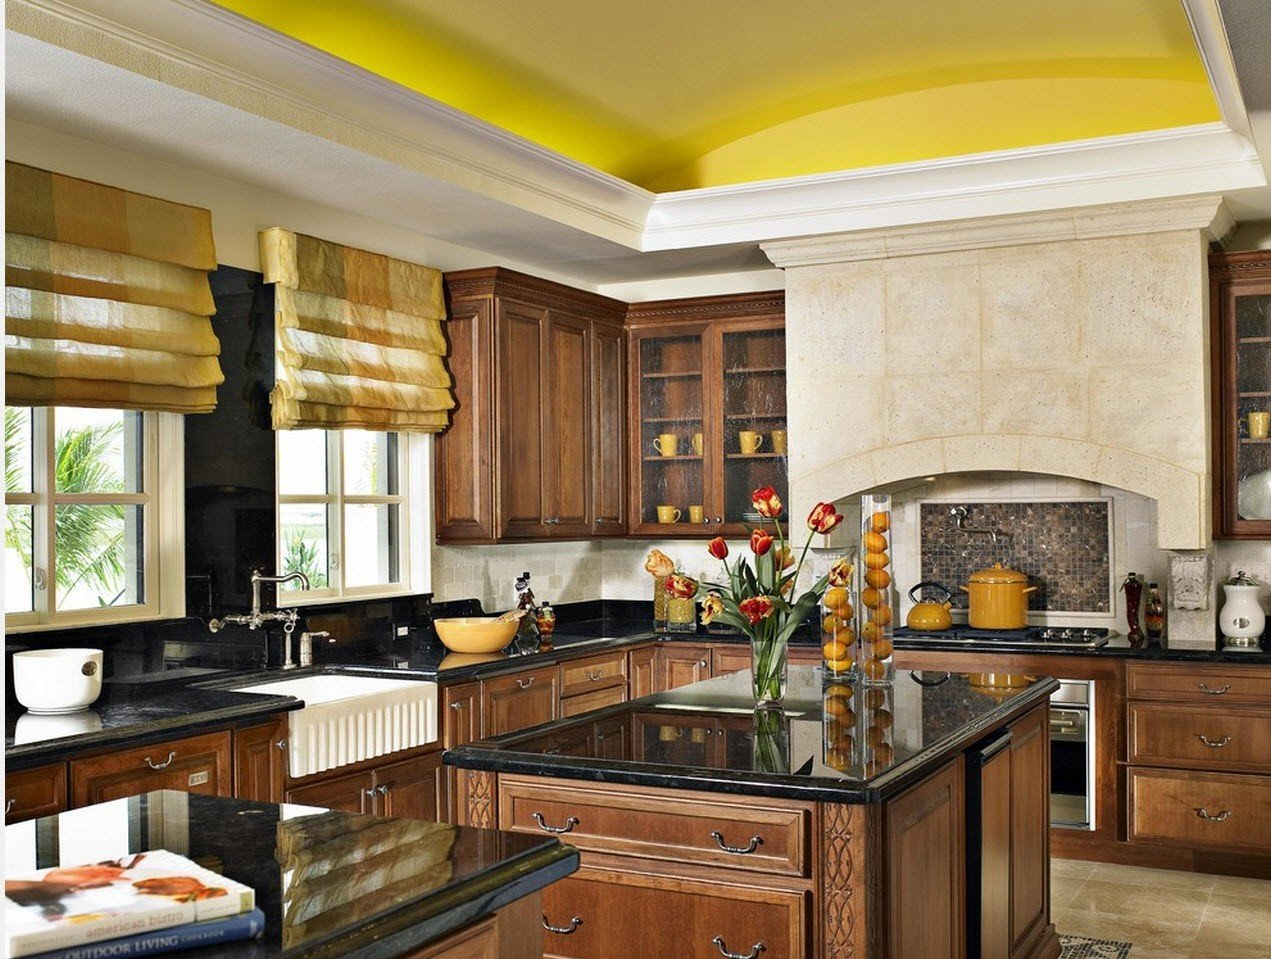 Yellow ceiling and noble dark wood for furniture in the Classic kitchen